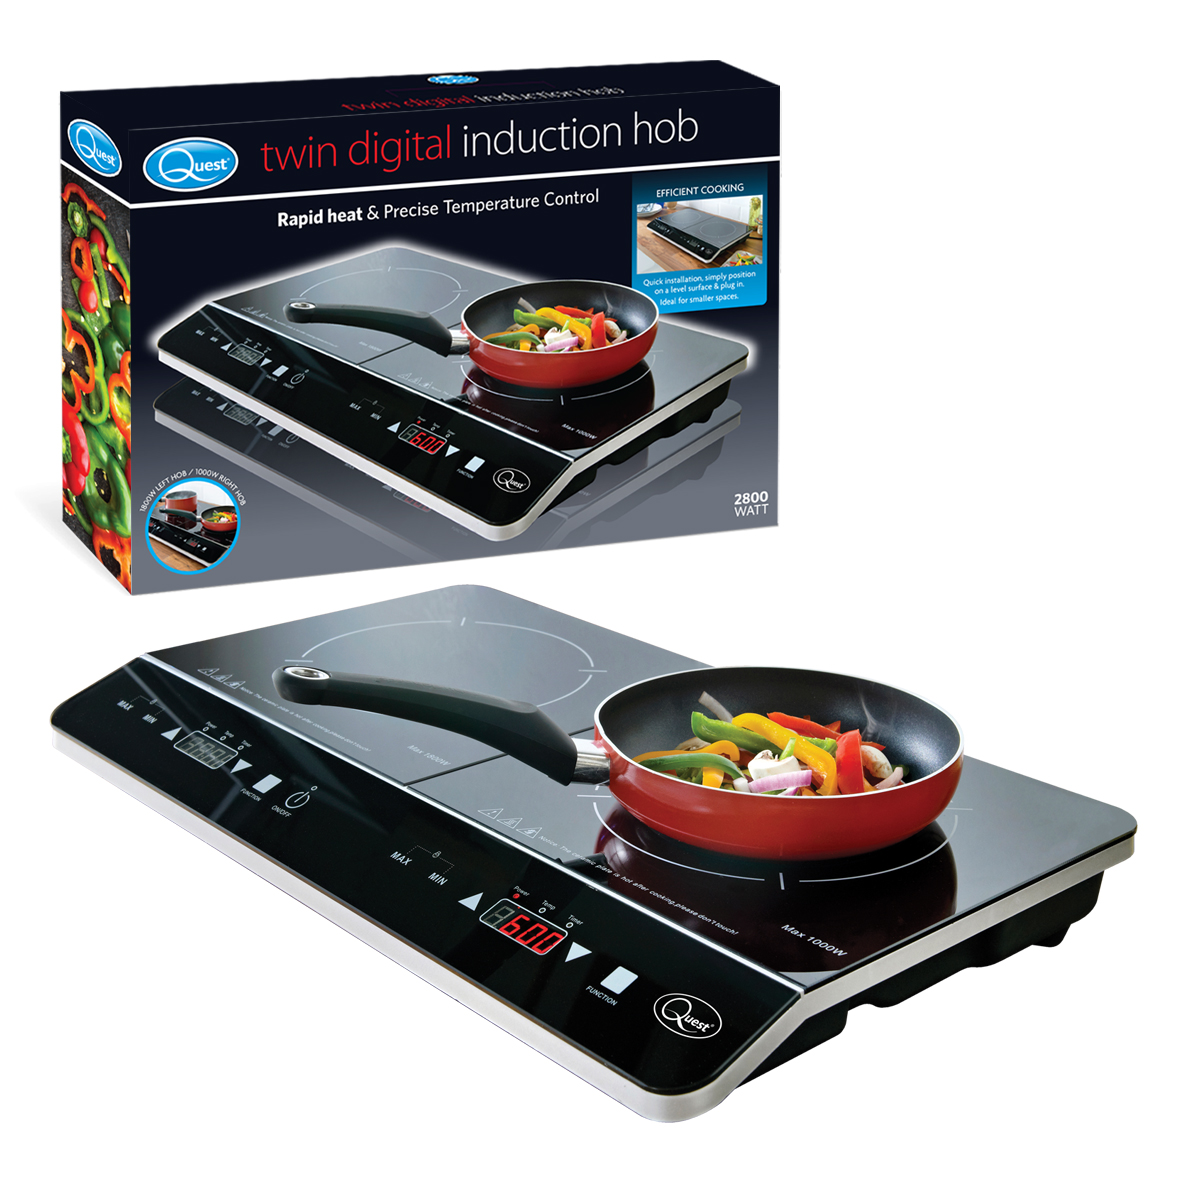 Double Digital Induction Hob and box